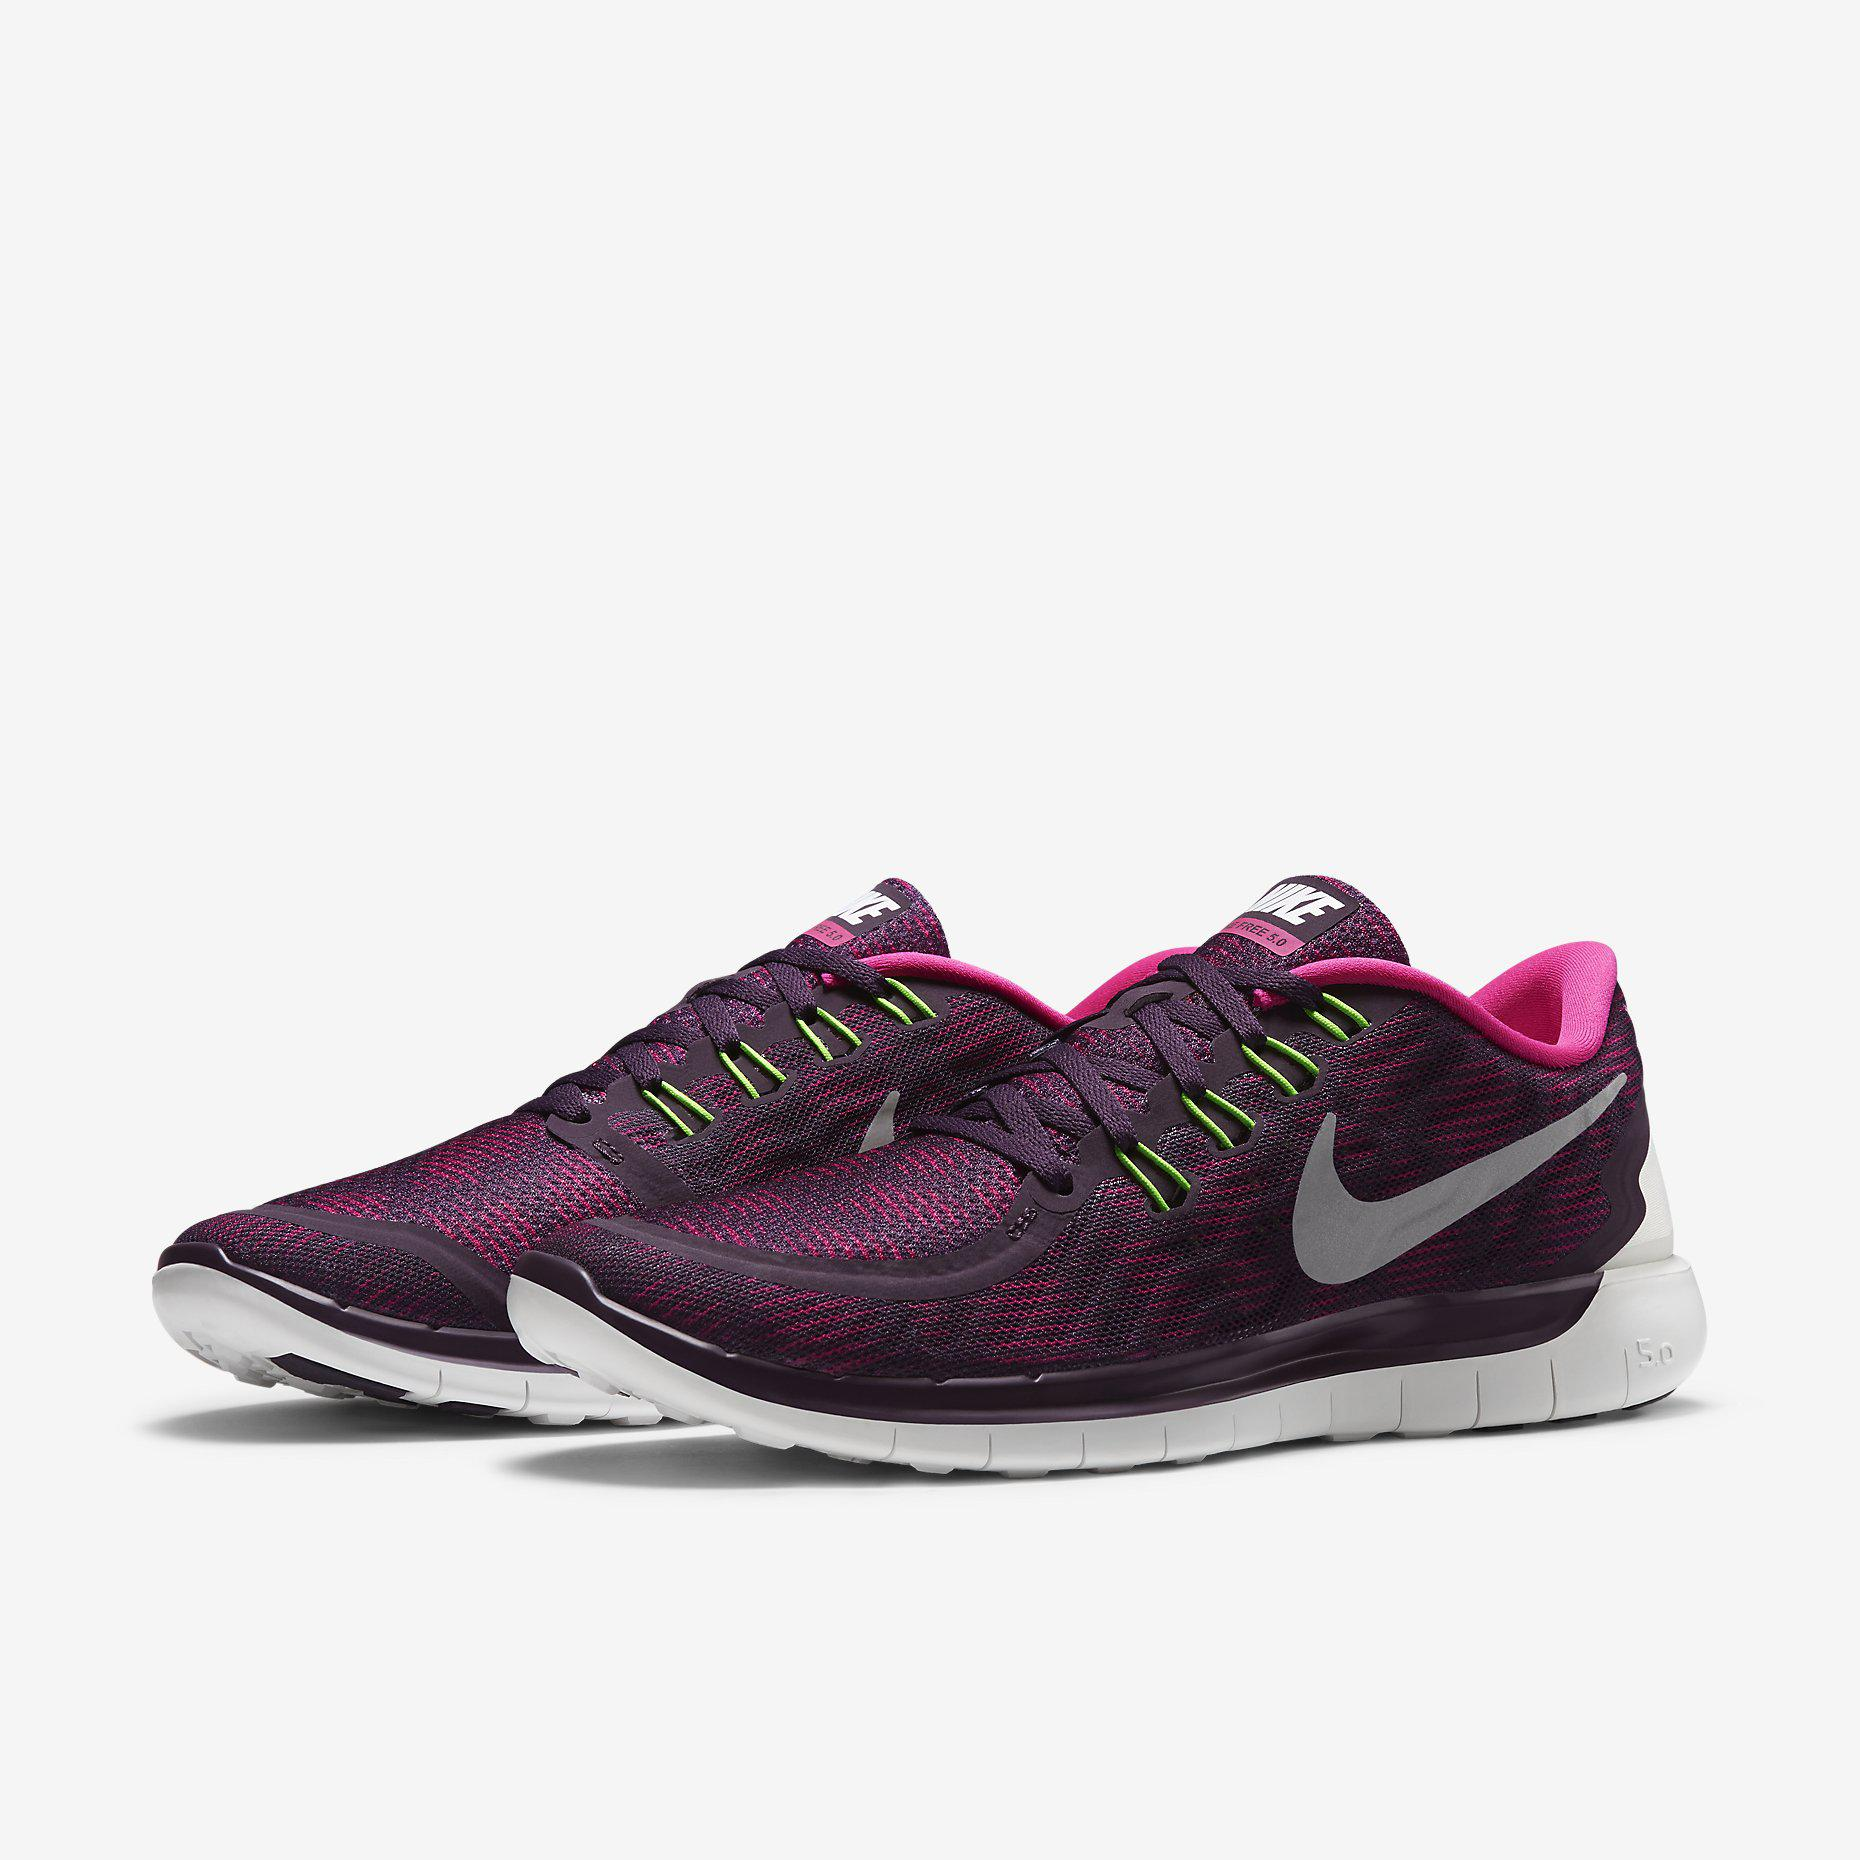 Nike Womens Free 5.0+ Print Running Shoes - PurplePink